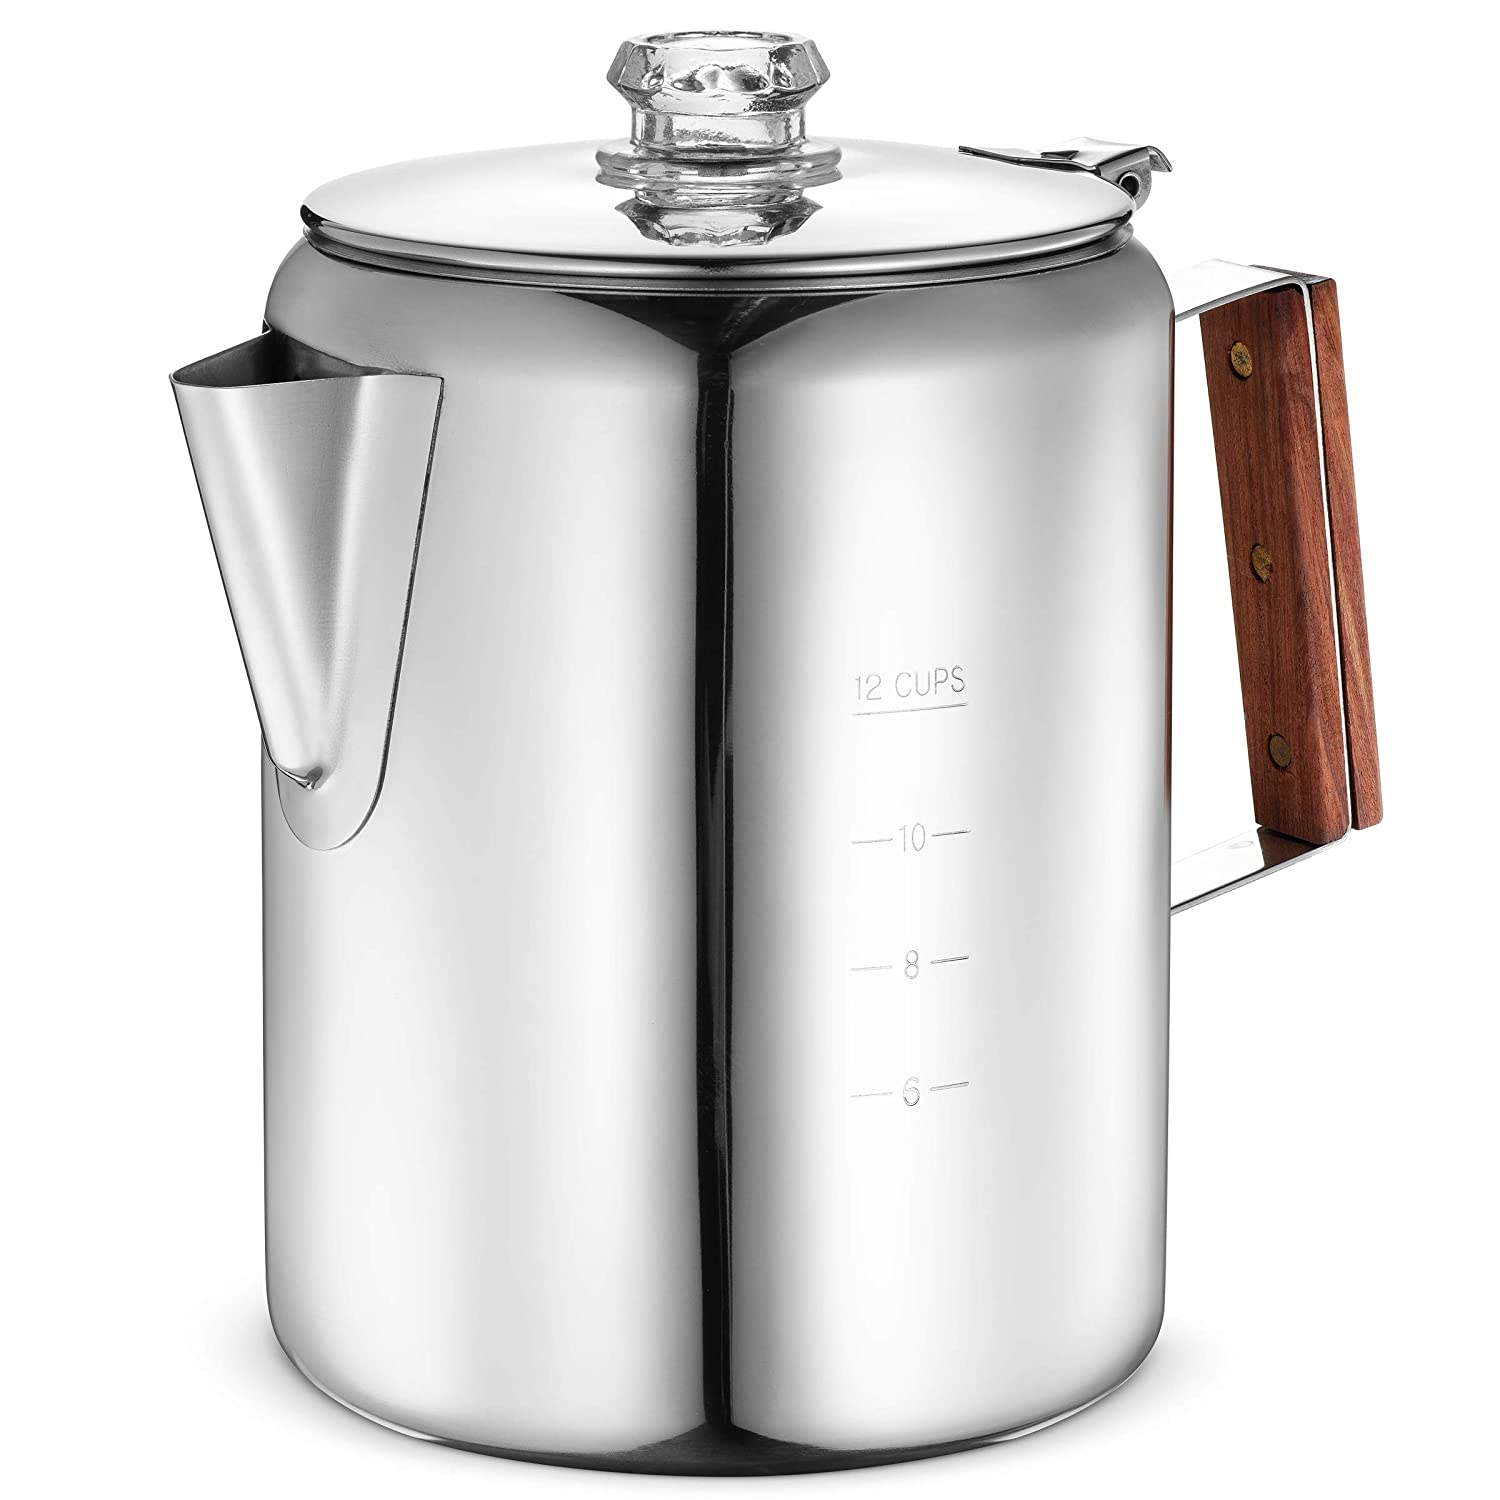 Eurolux Percolator Coffee Maker Pot - 12 Cups | Durable Stainless Steel Material | Brew Coffee On Fire, Grill or Stovetop | No Electricity, eNo Bad Plastic Taste | Ideal for Home, Camping & Travel